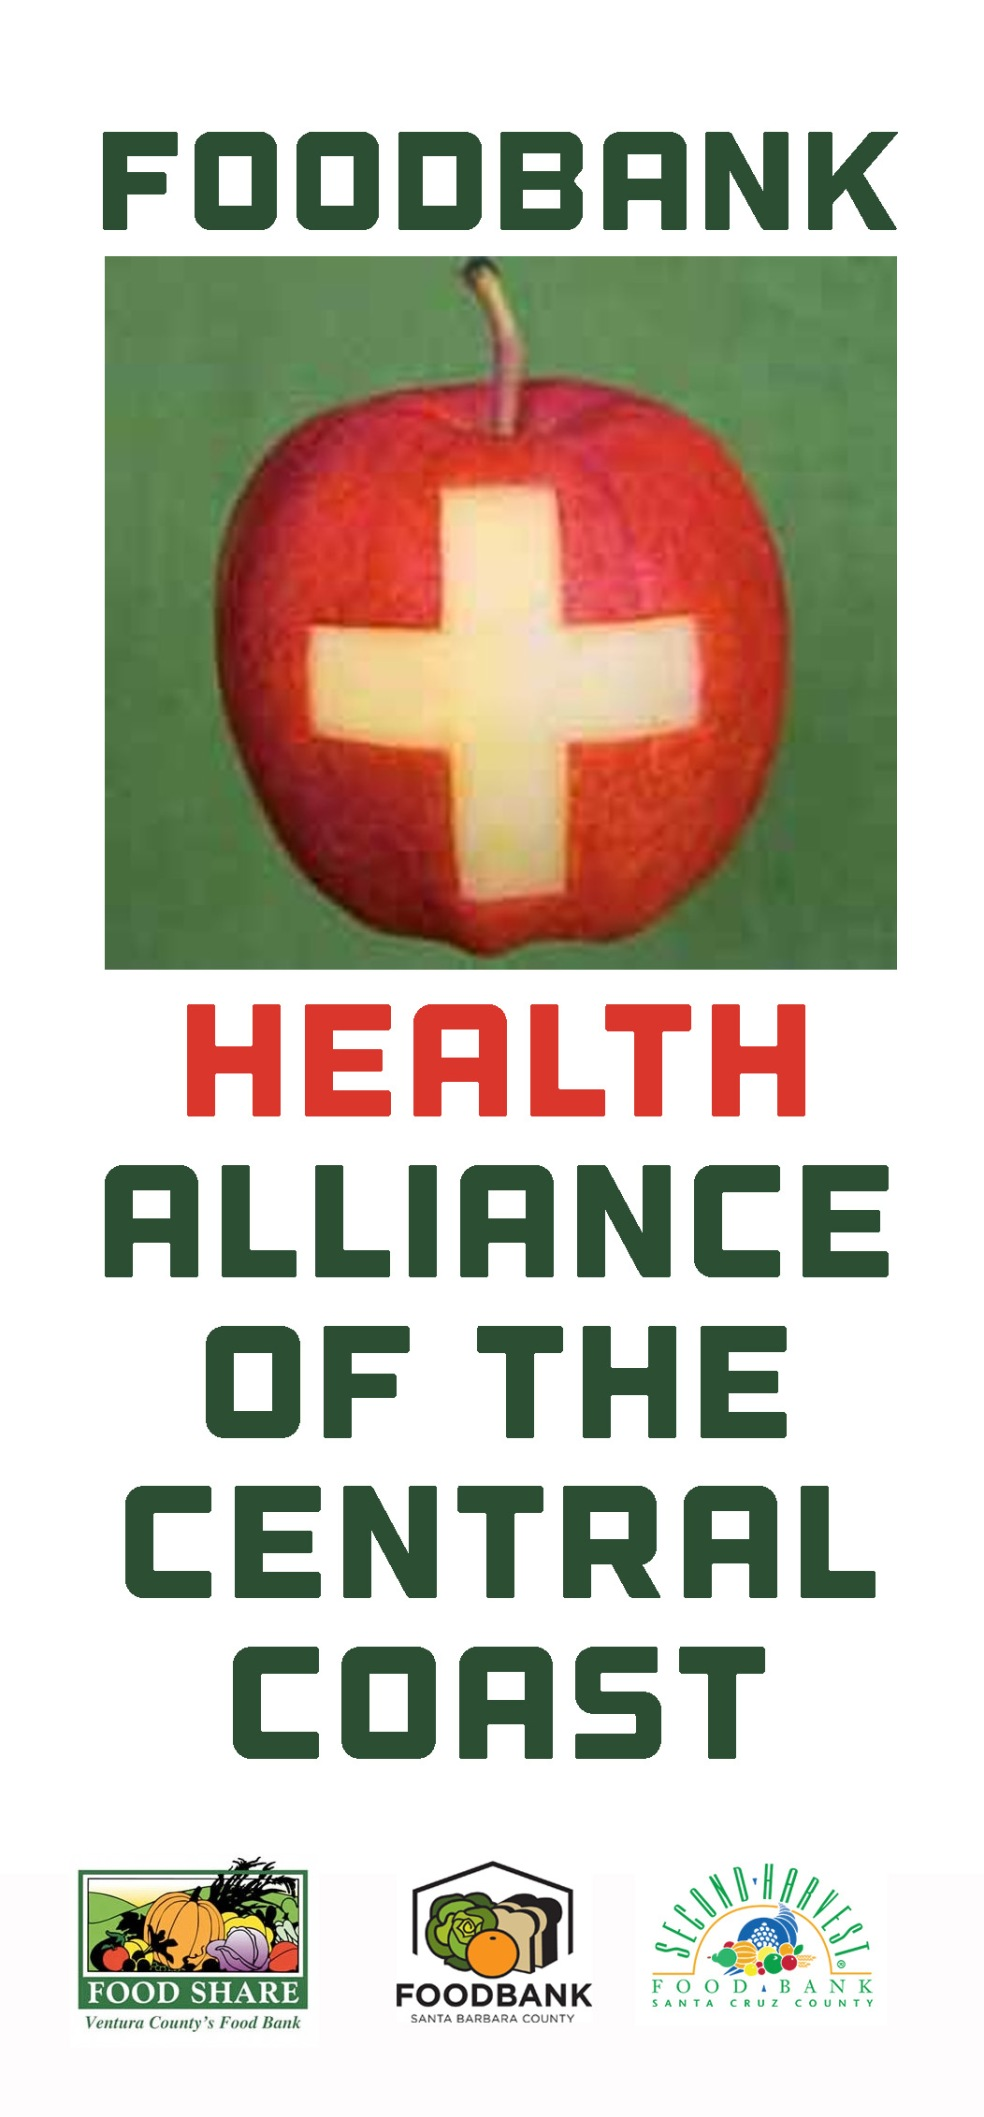 Foodbank Health Alliance of the Central Coast logo